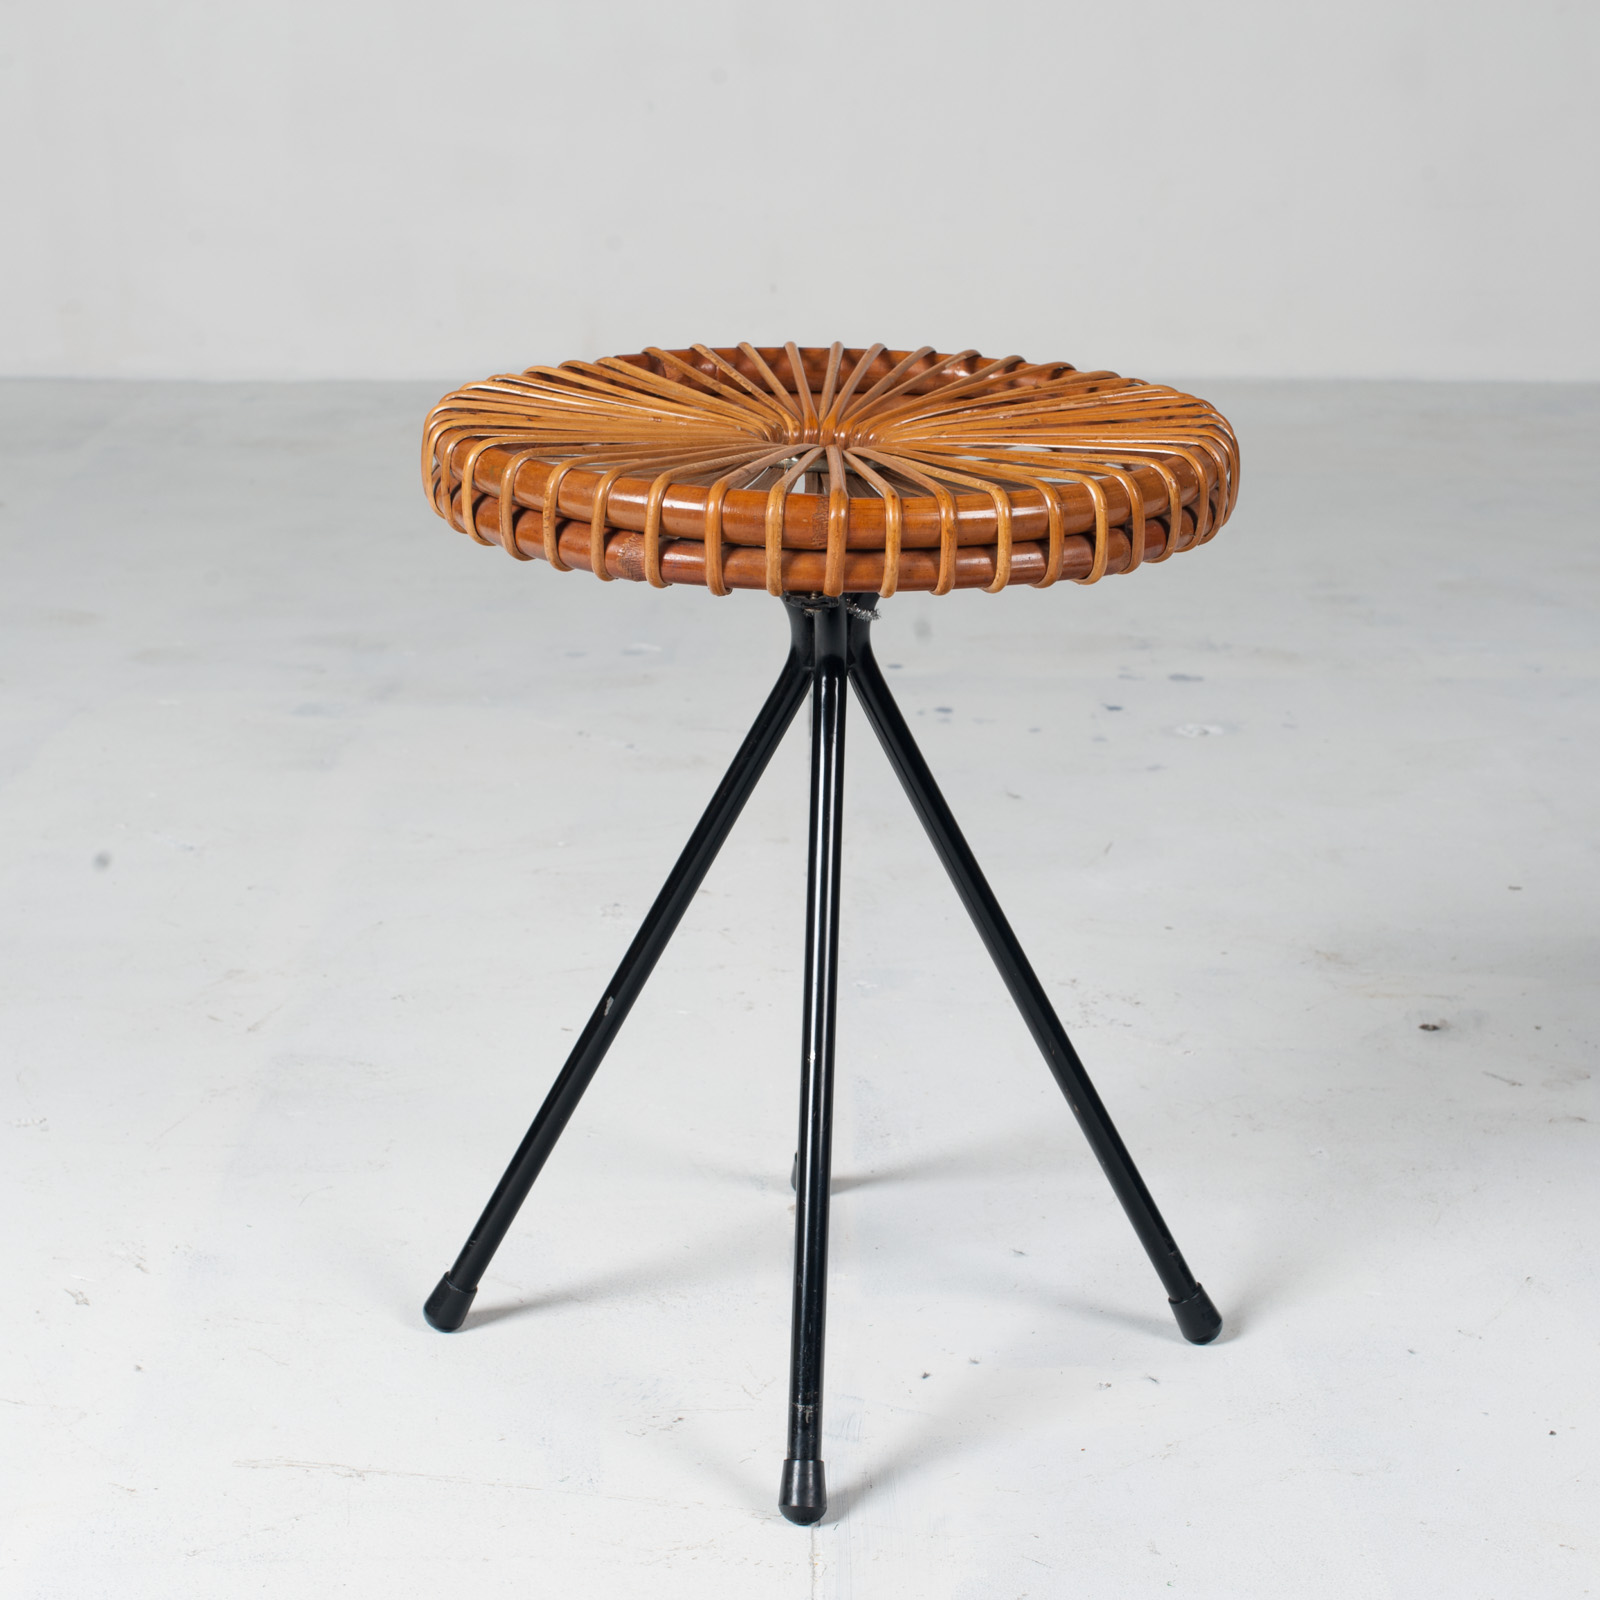 Ratten Stool By Dirk Van Sliedregt For Rohe Noordwolde 1950s Netherlands 02